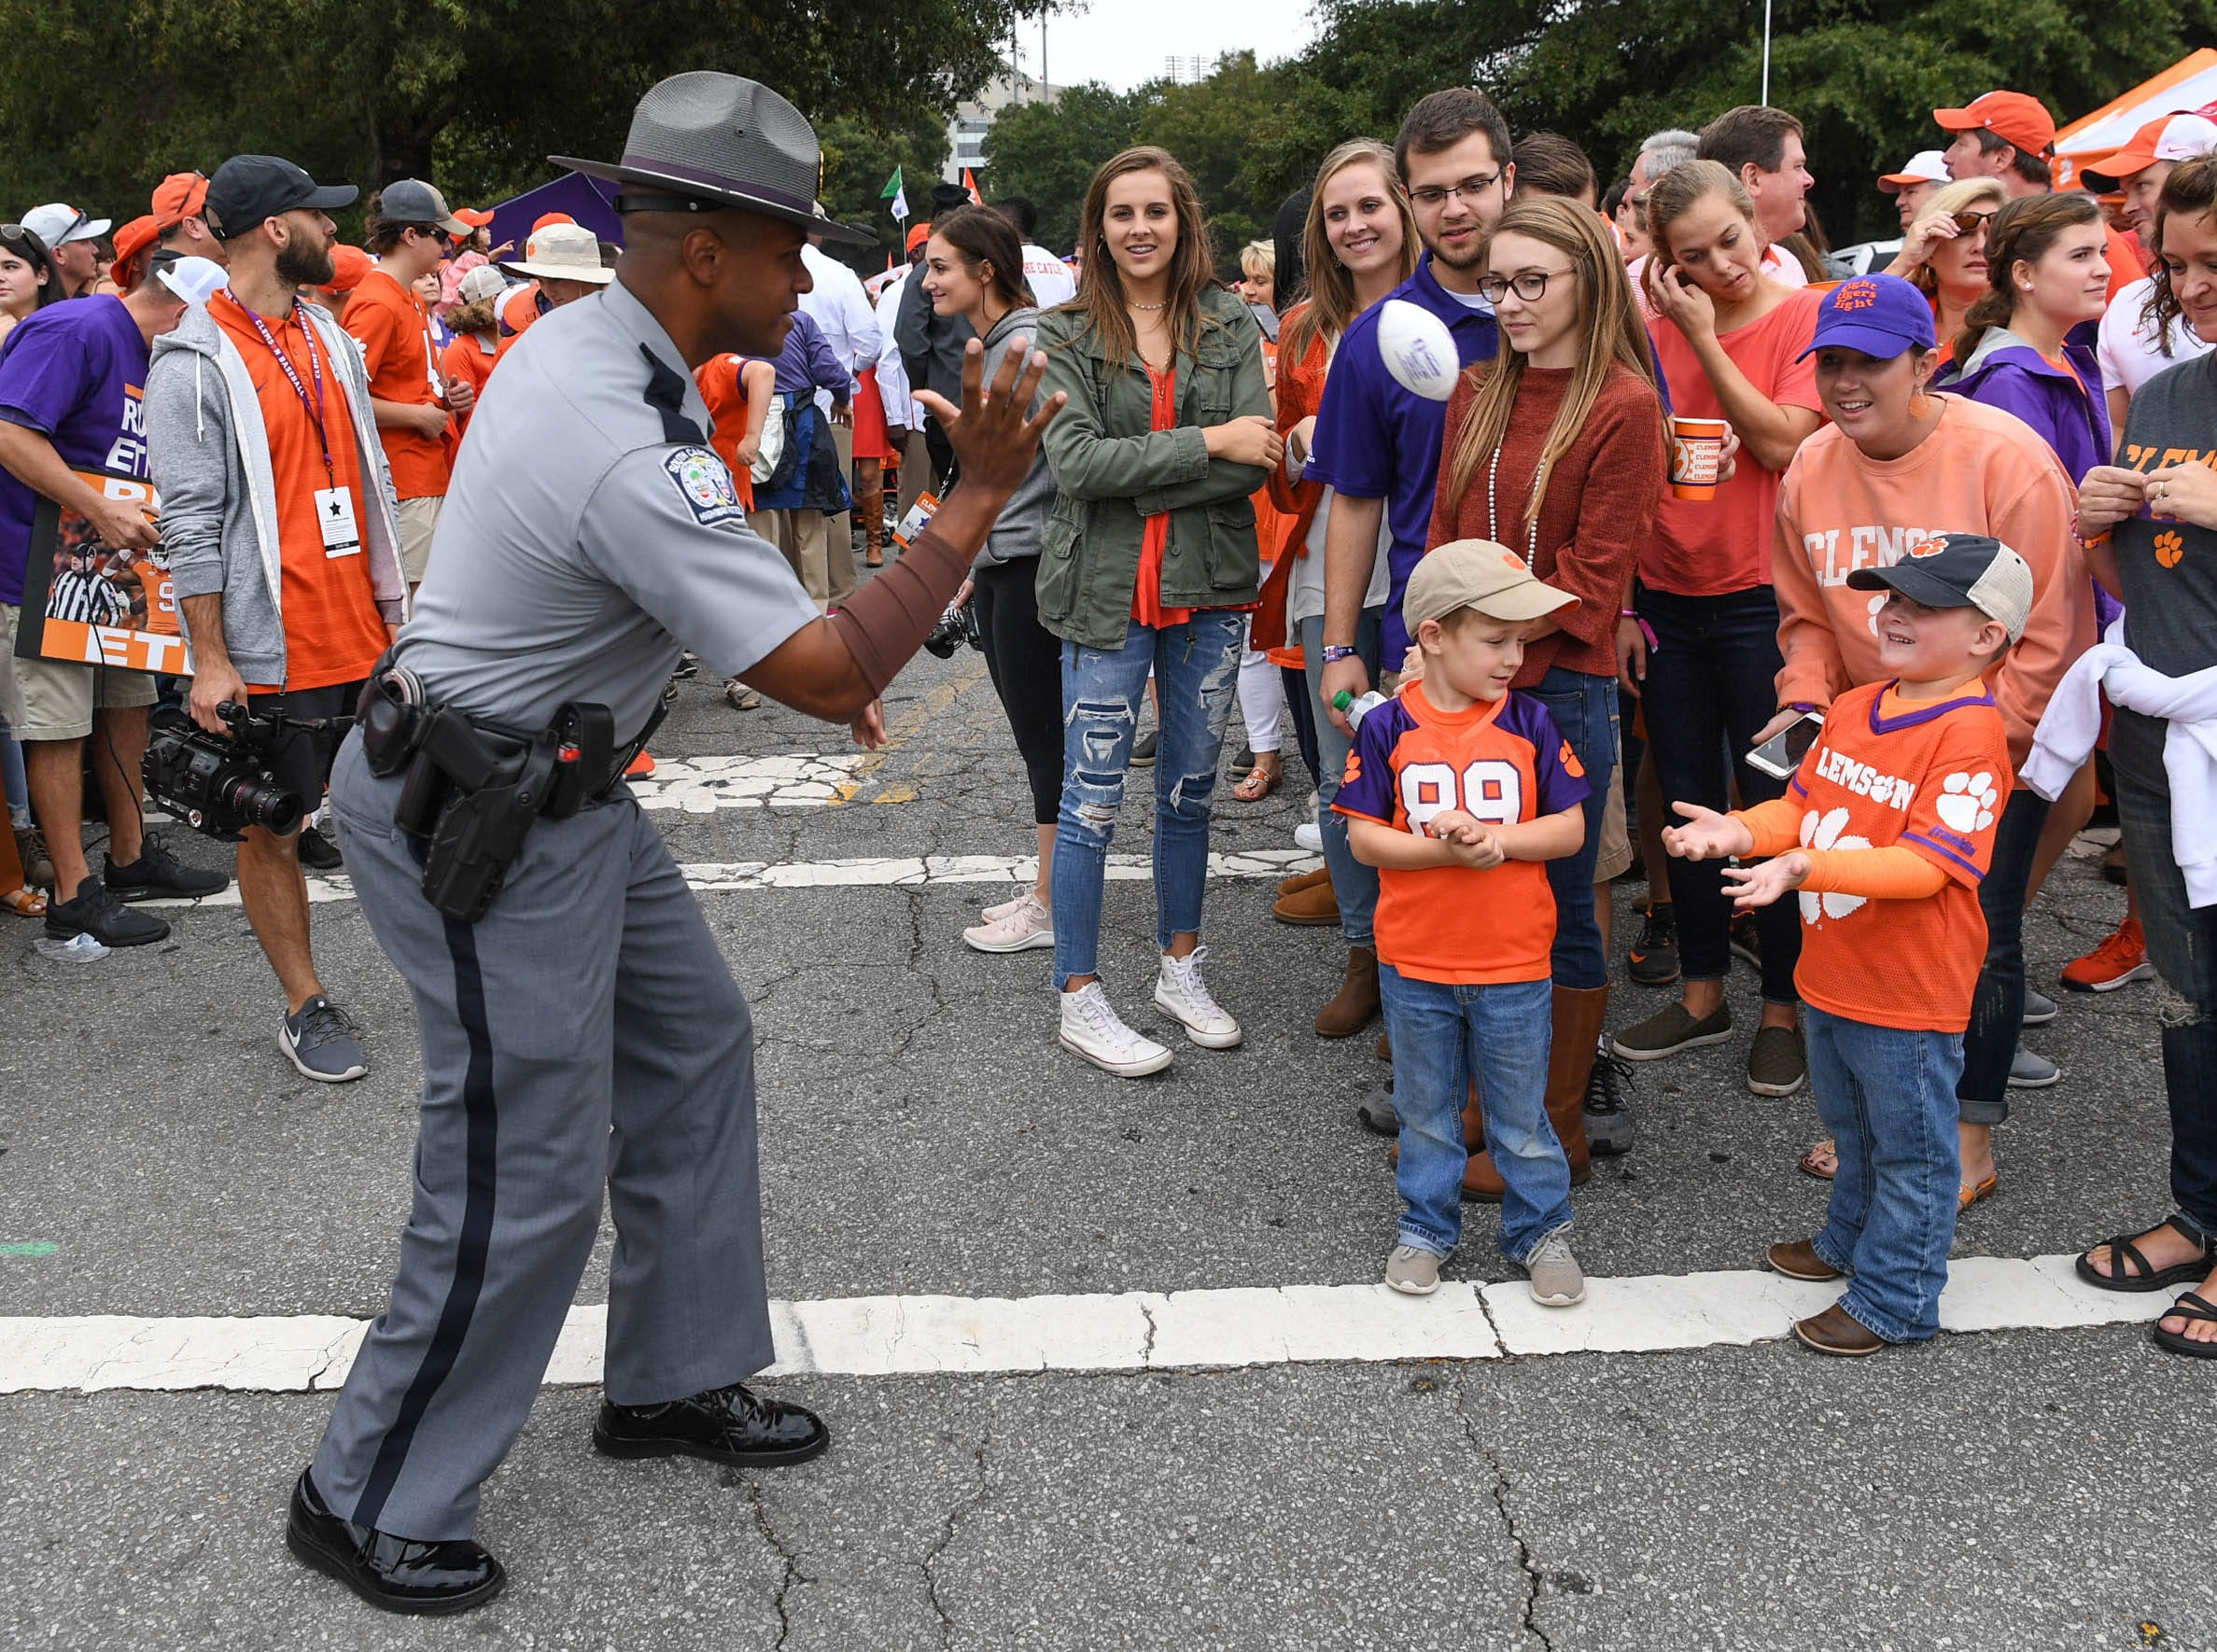 South Carolina Trooper J.W. Price tosses a plastic football with Garner Wash of Saluda minutes before Tiger Walk before the game in Memorial Stadium on Saturday, October 20, 2018.